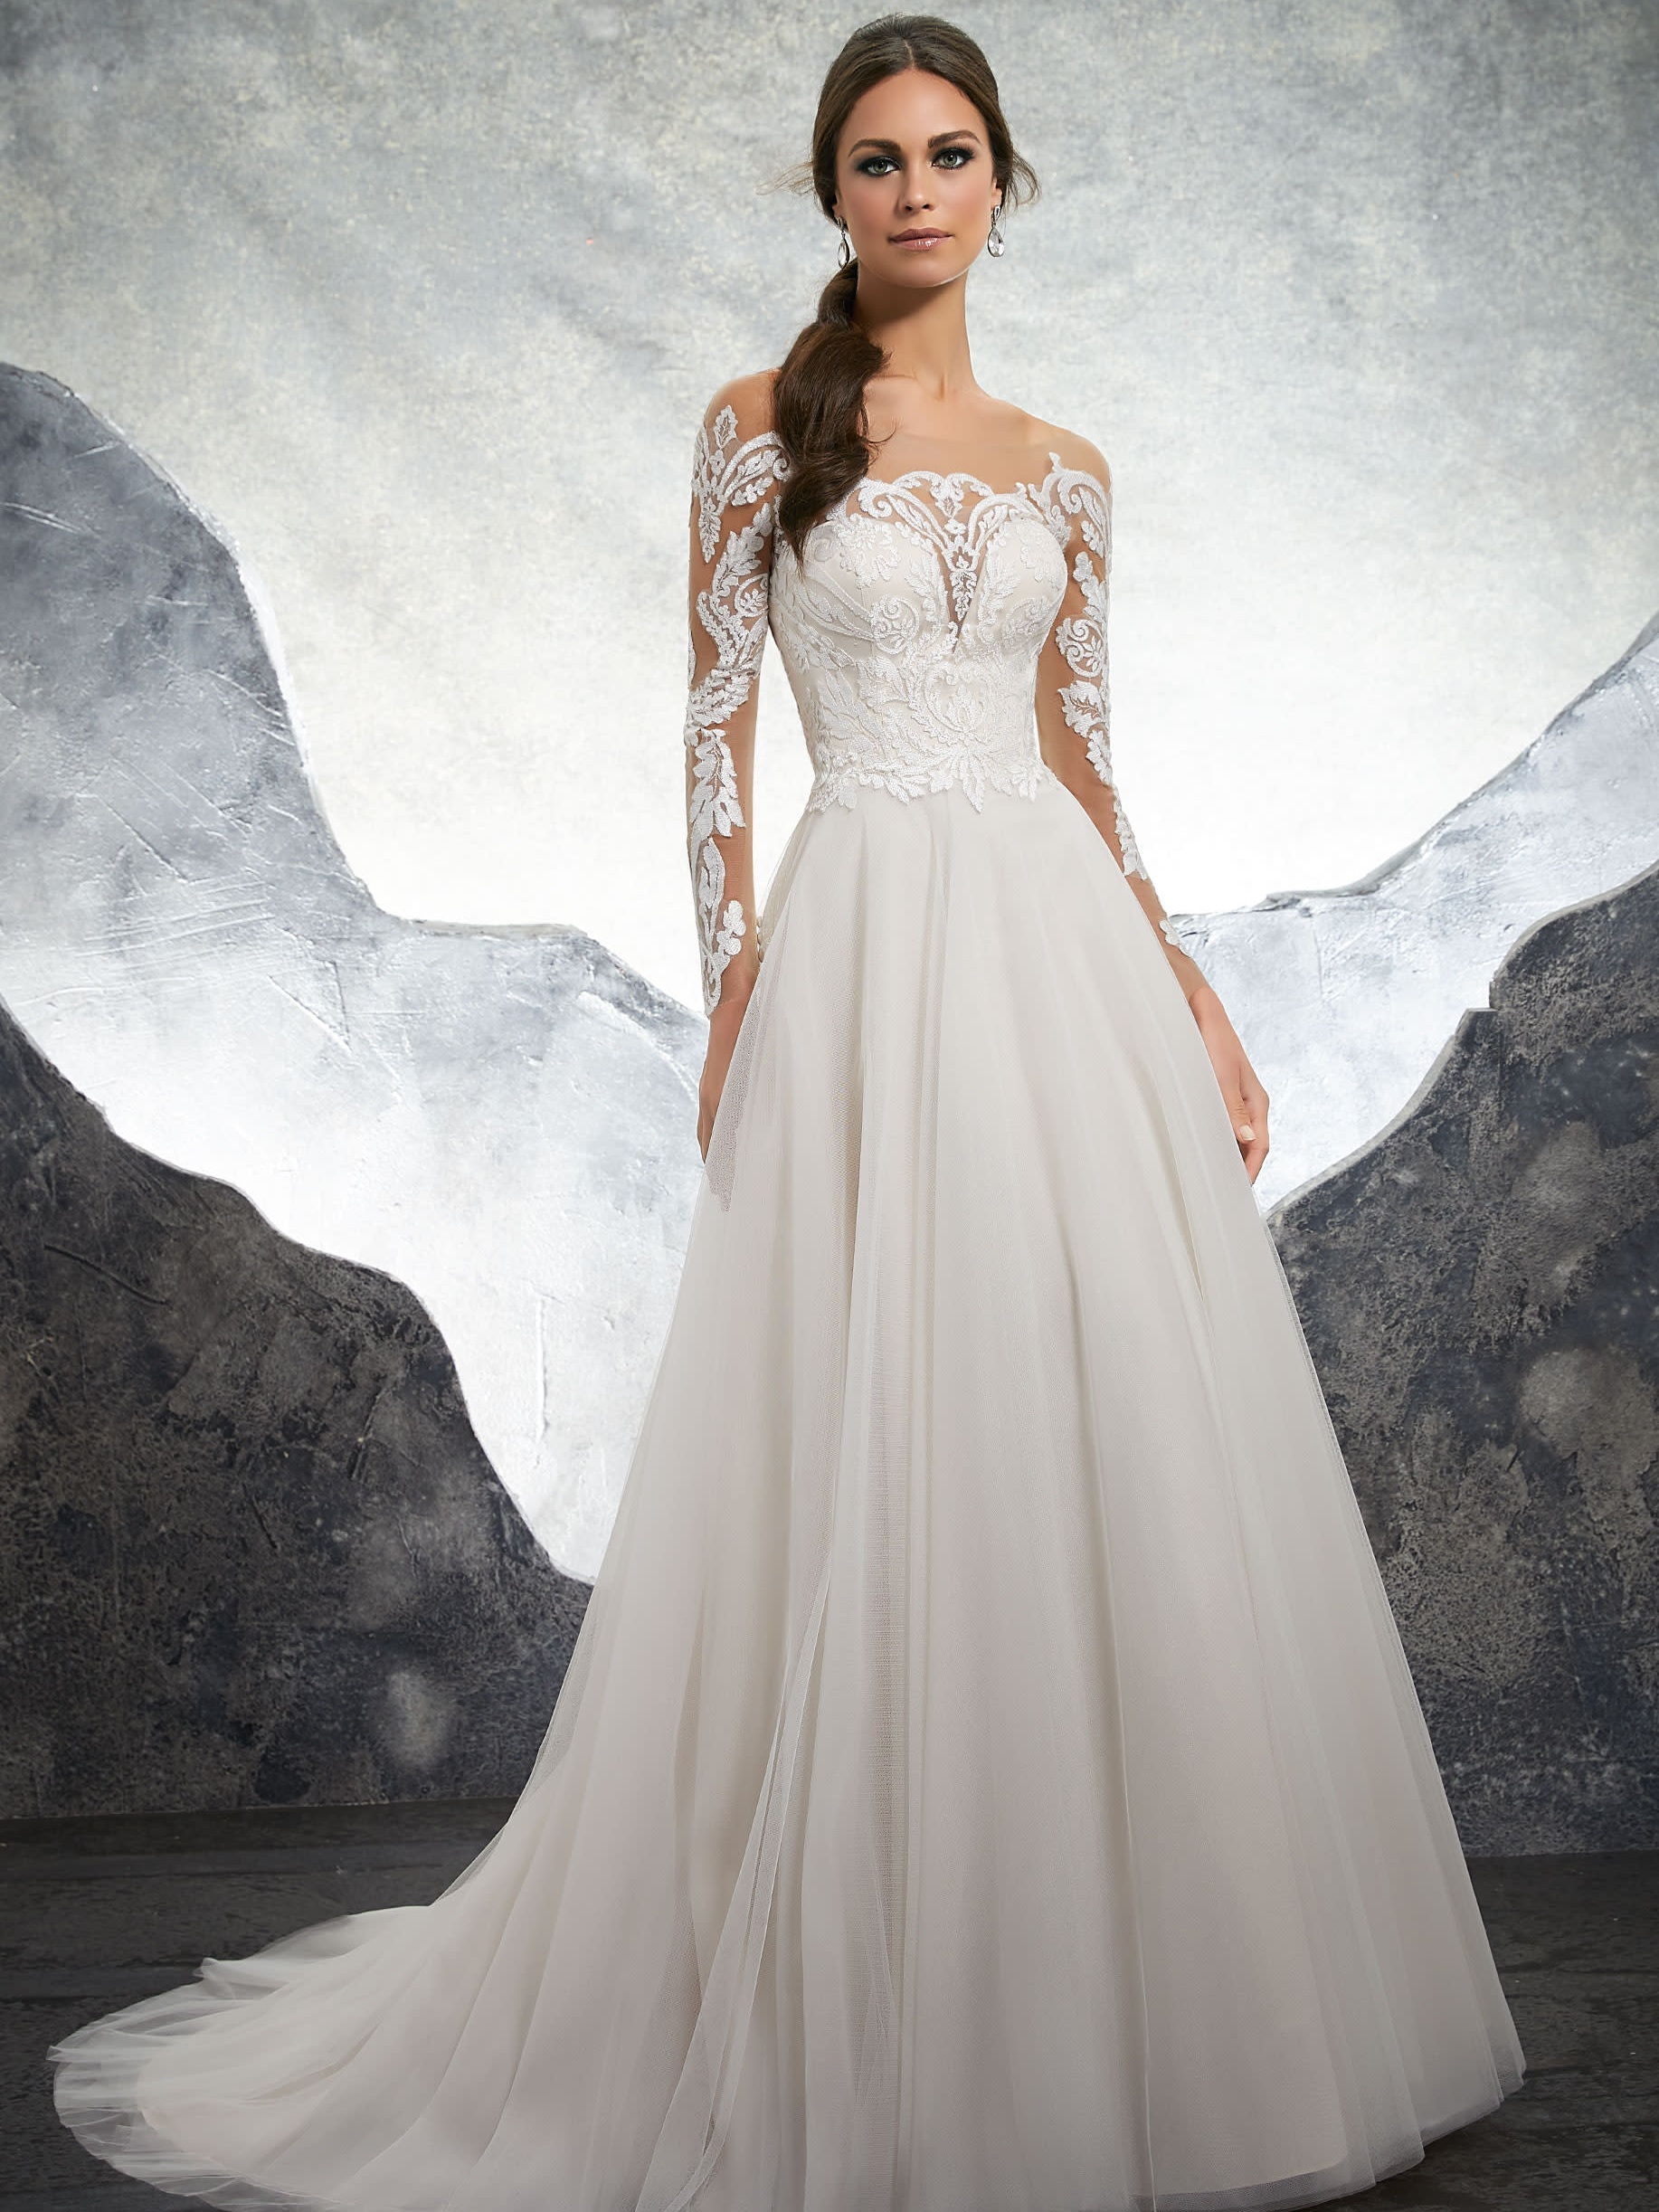 Mori Lee 5602 Ivory/Blush // Retail Price $1225 | Our Price $857